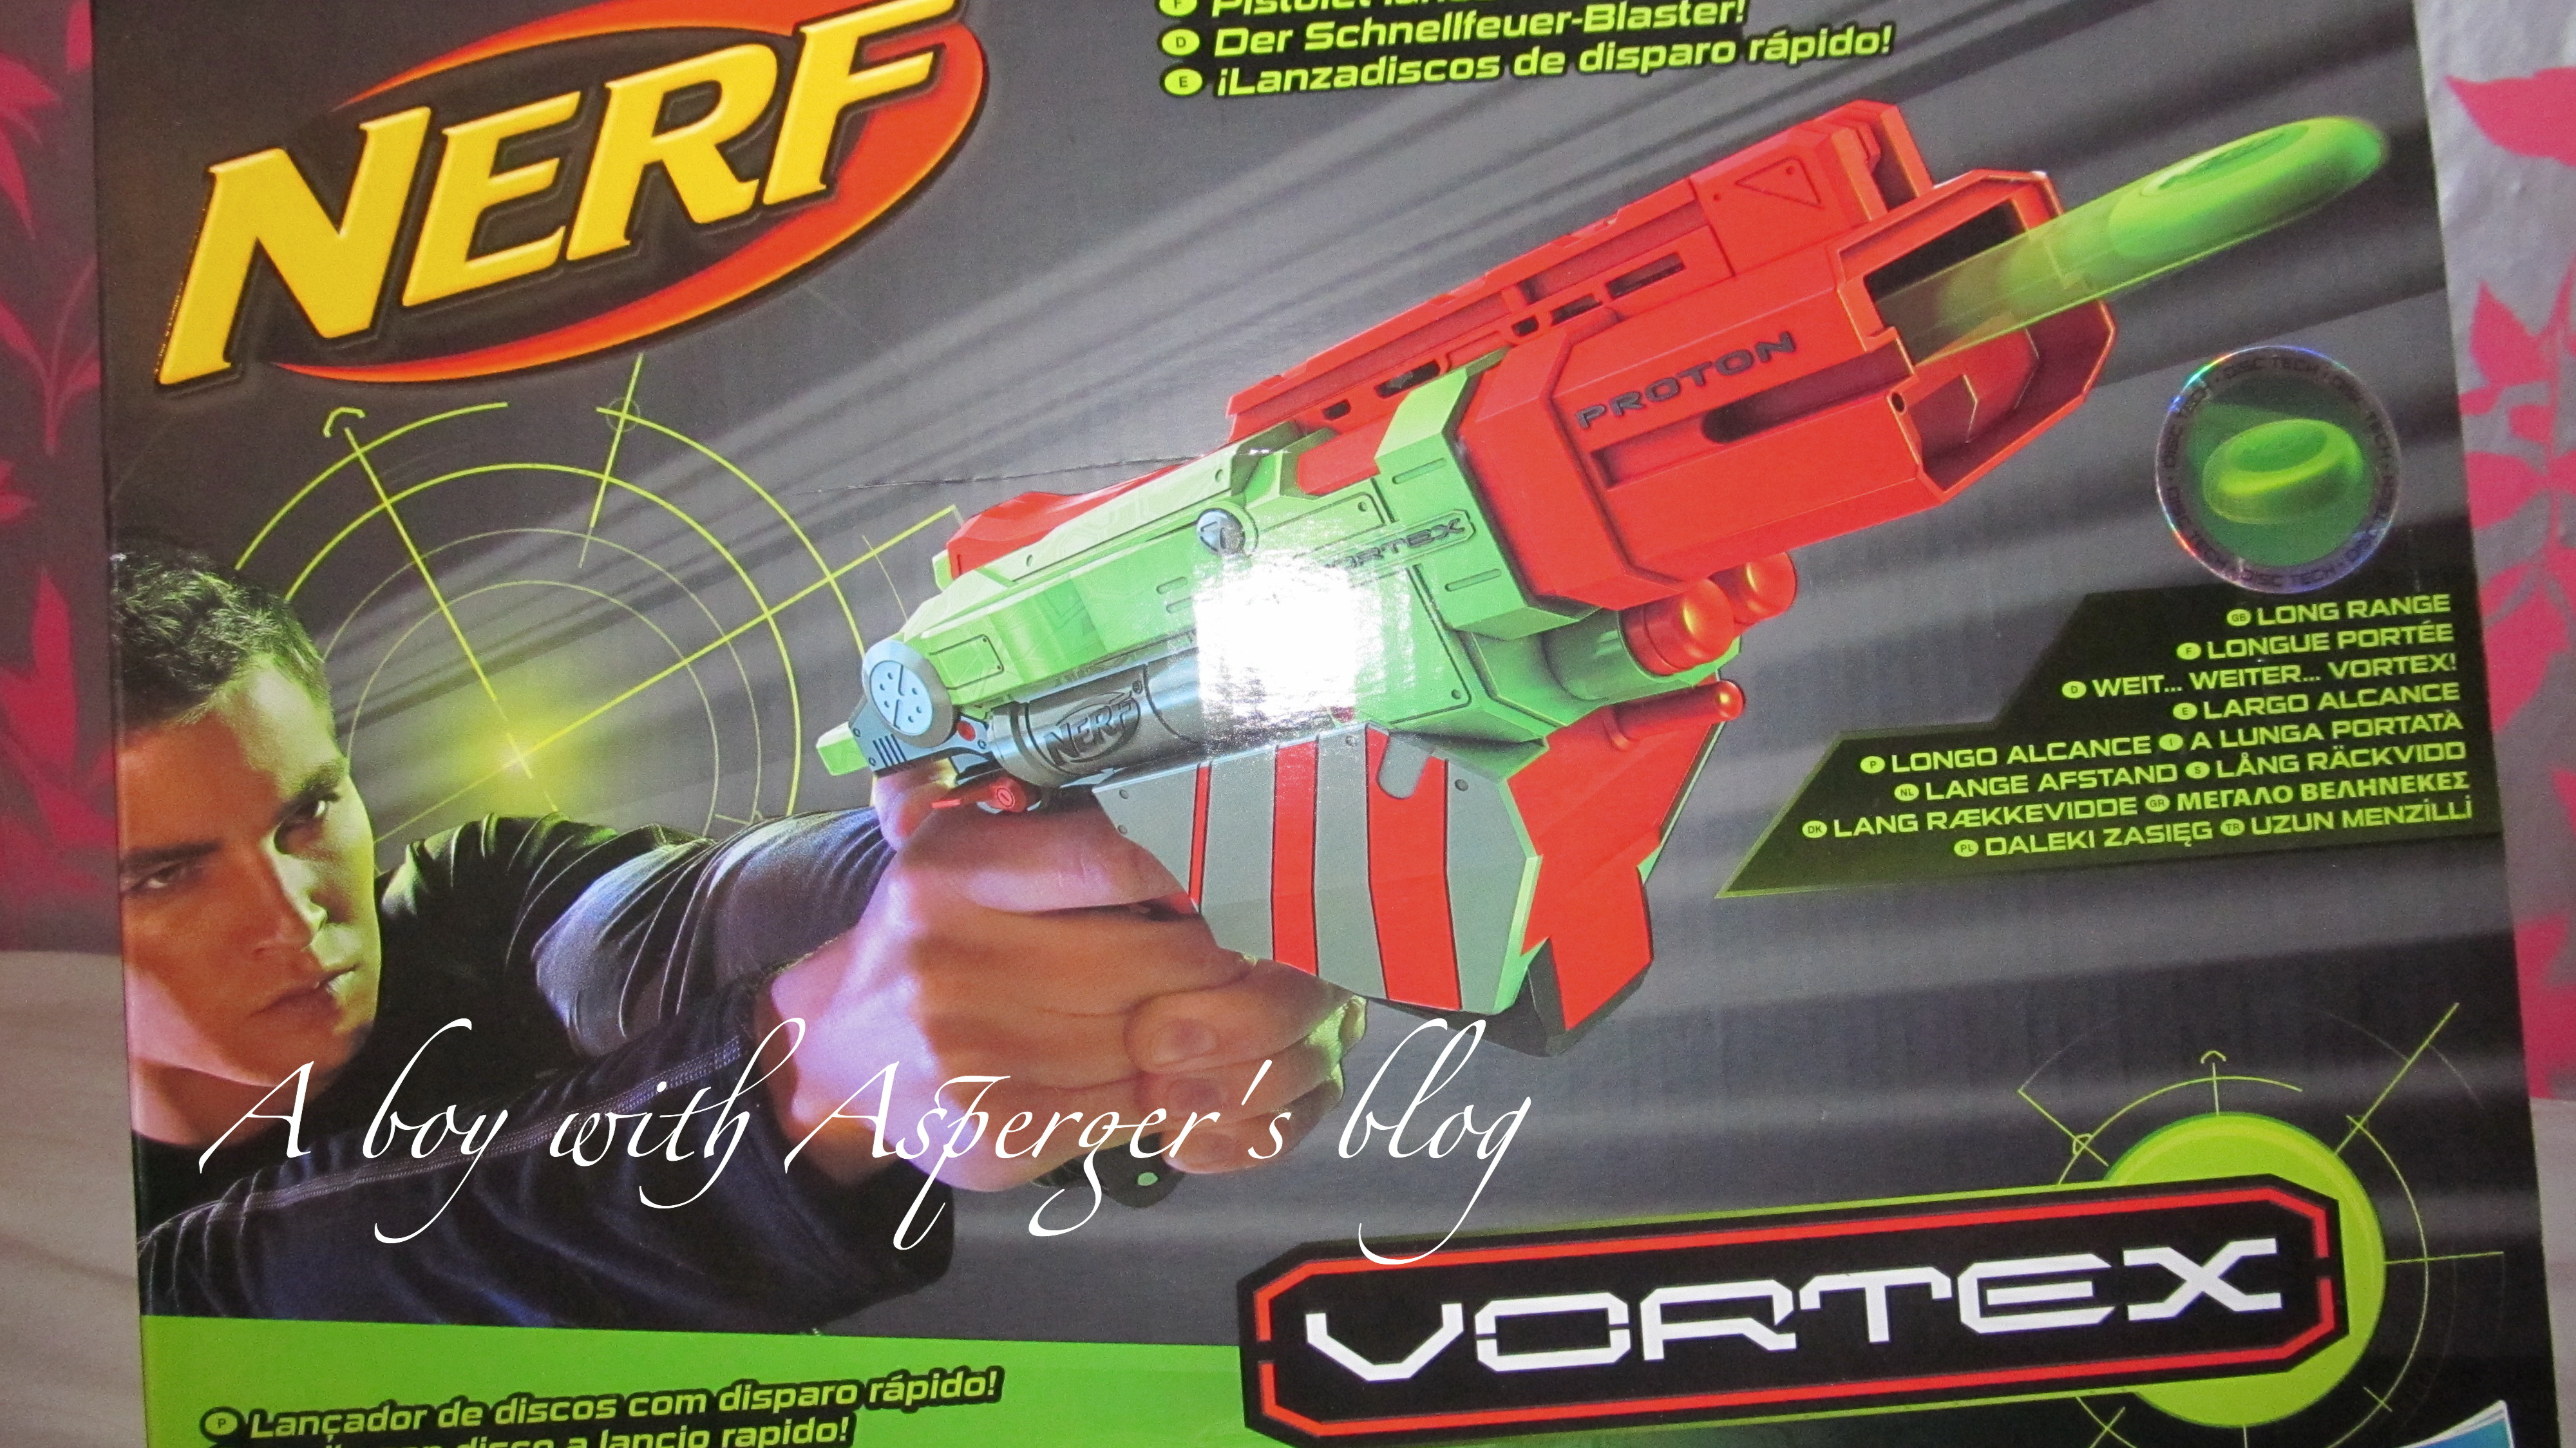 We quite recently reviewed another Nerf blaster (the daddy of Nerf's) So, I  knew the Little man would be happy to receive this addition of Nerf blaster.